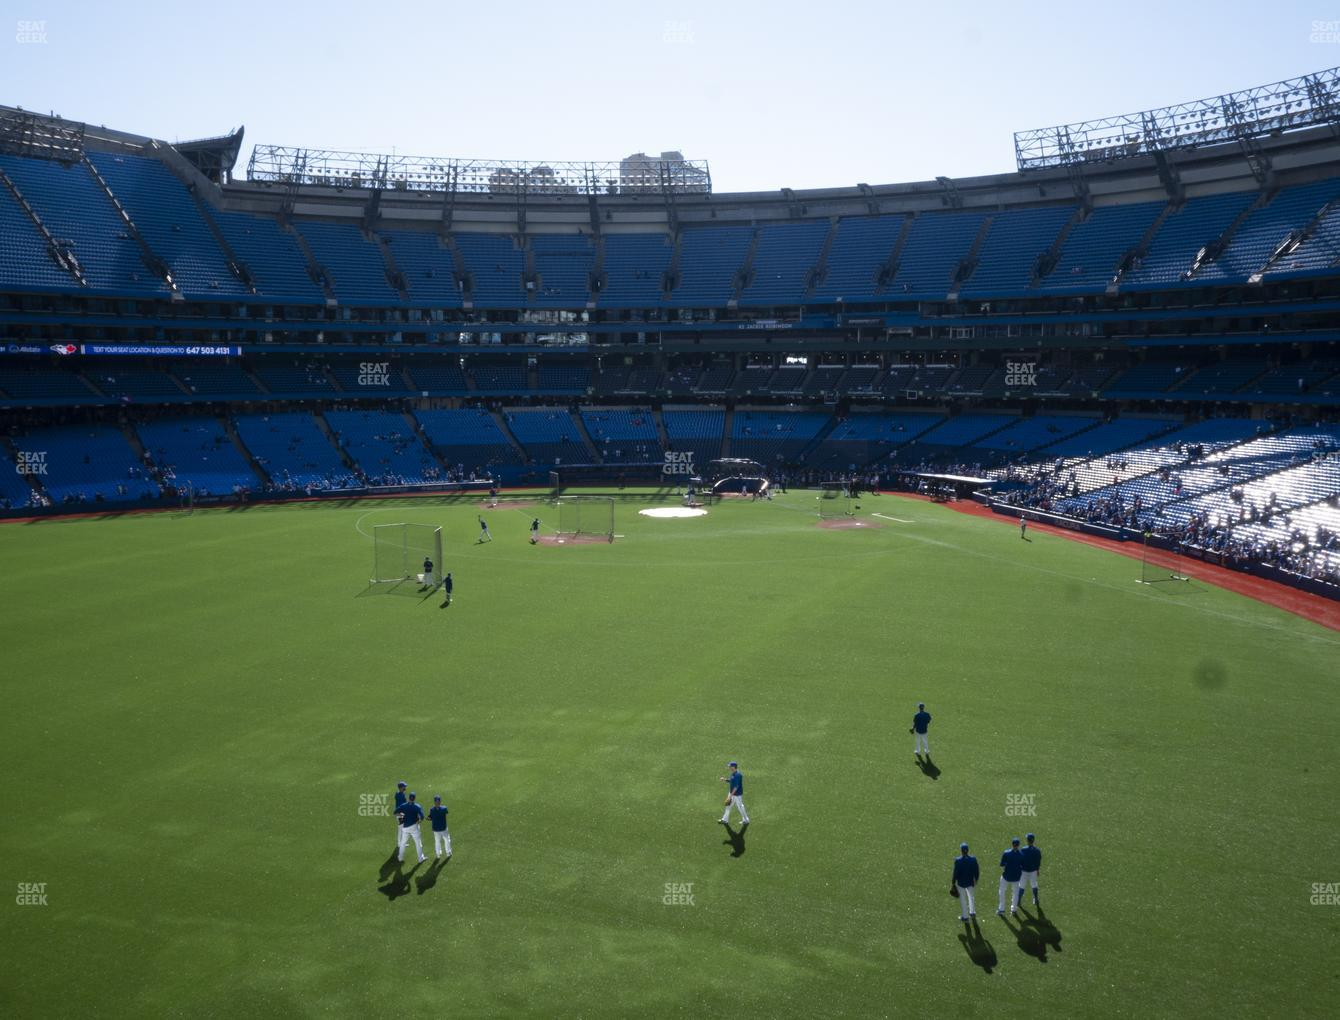 Toronto Blue Jays at Rogers Centre Section 244 R View